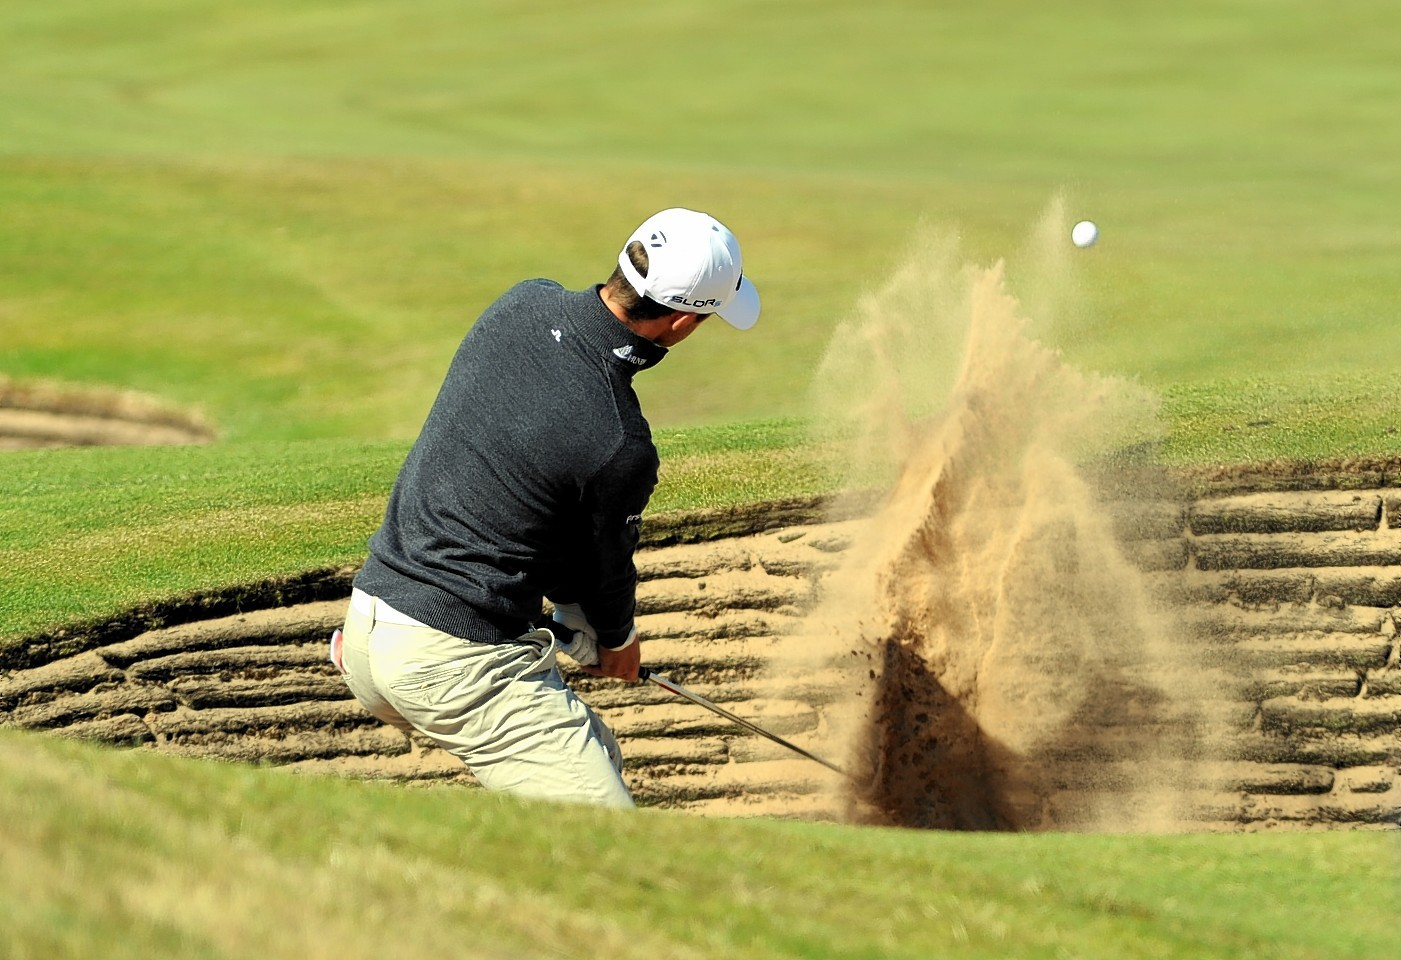 David Law has received an invite to play in the Scottish Open at Royal Aberdeen